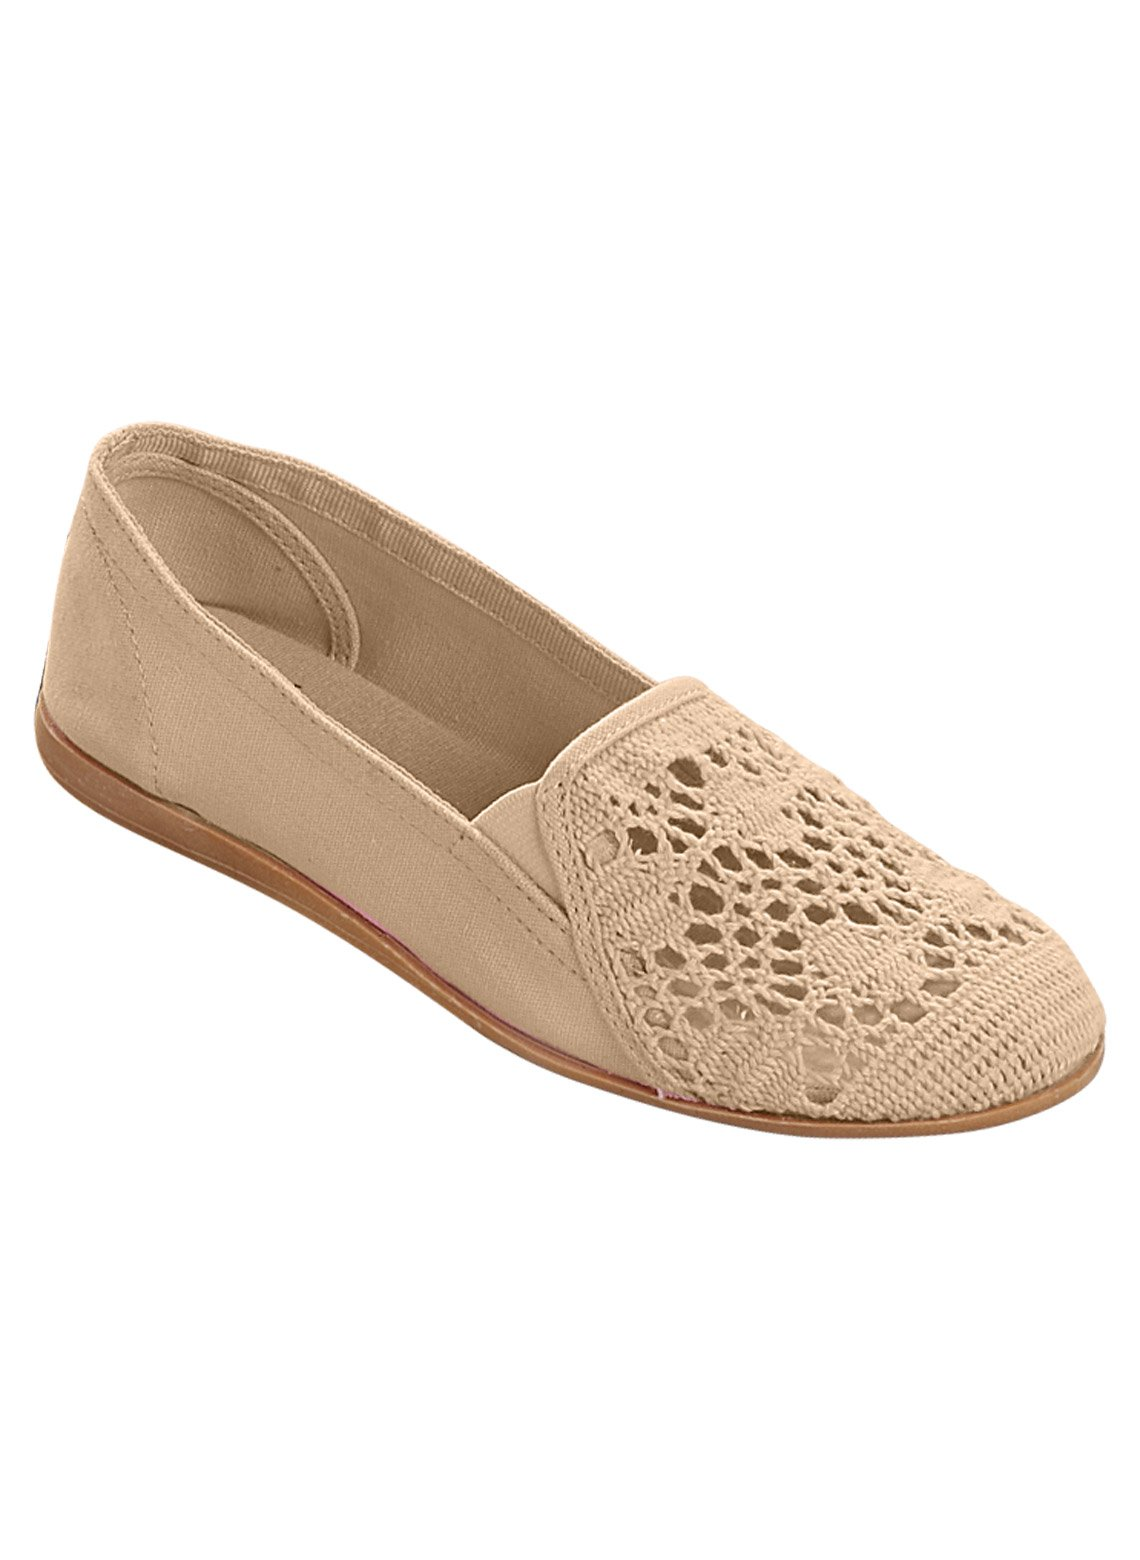 Carol Wright Gifts Crochet Slip-On, Bone, Size 7 (Wide)